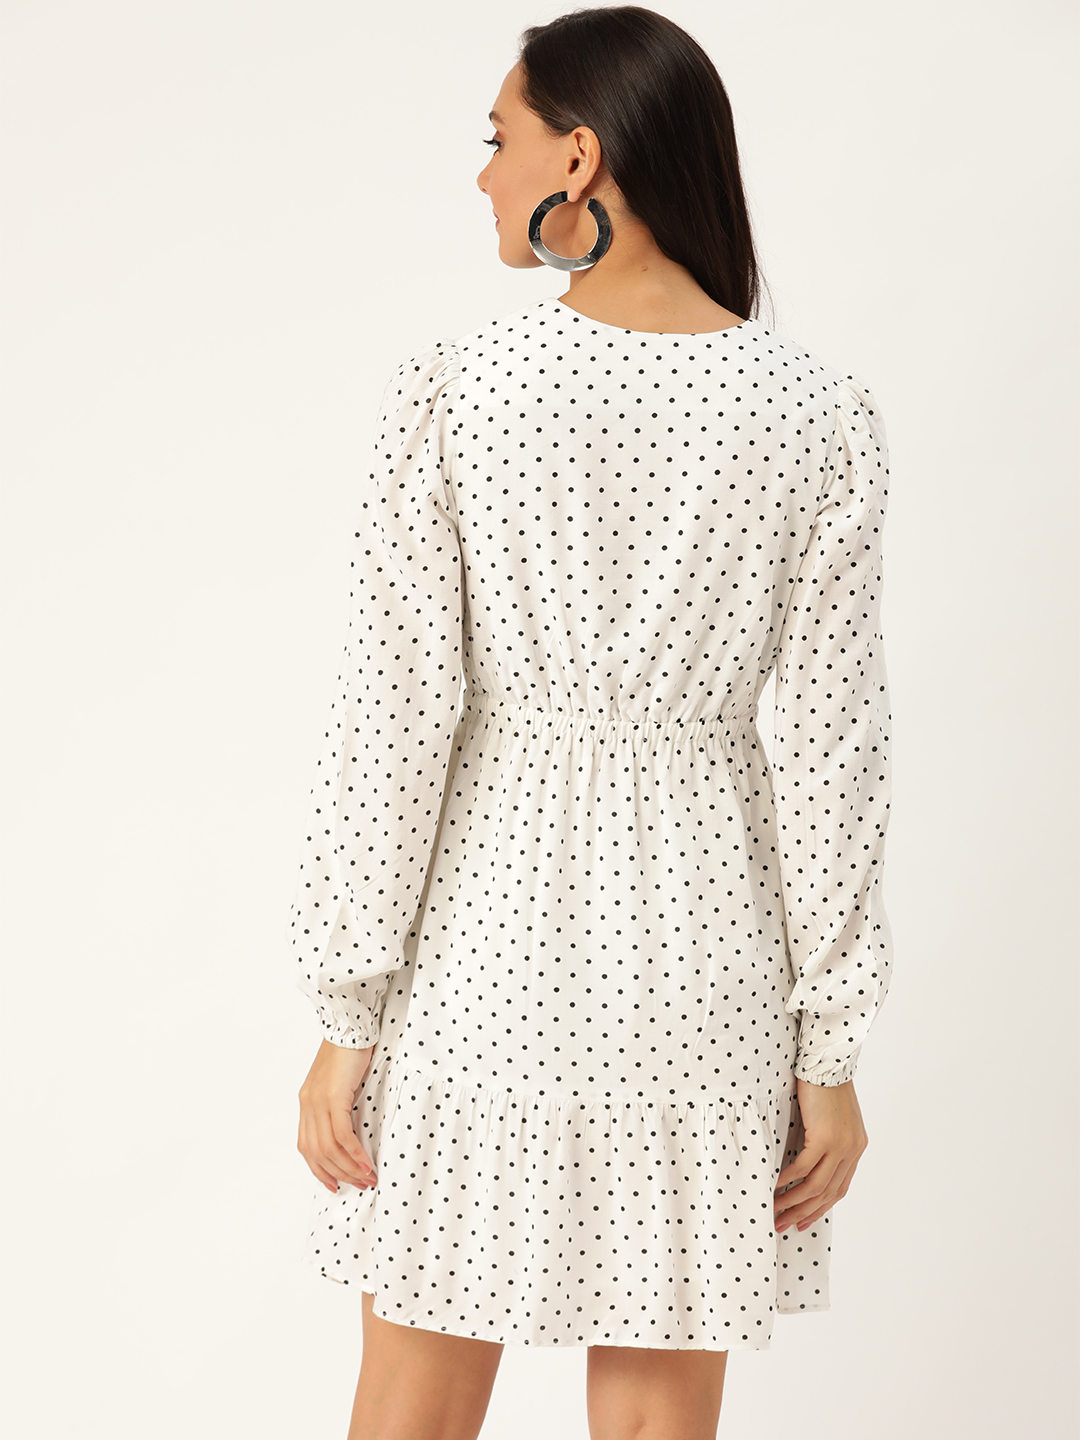 Dresses-Simply Elegant Polka Dot Dress3